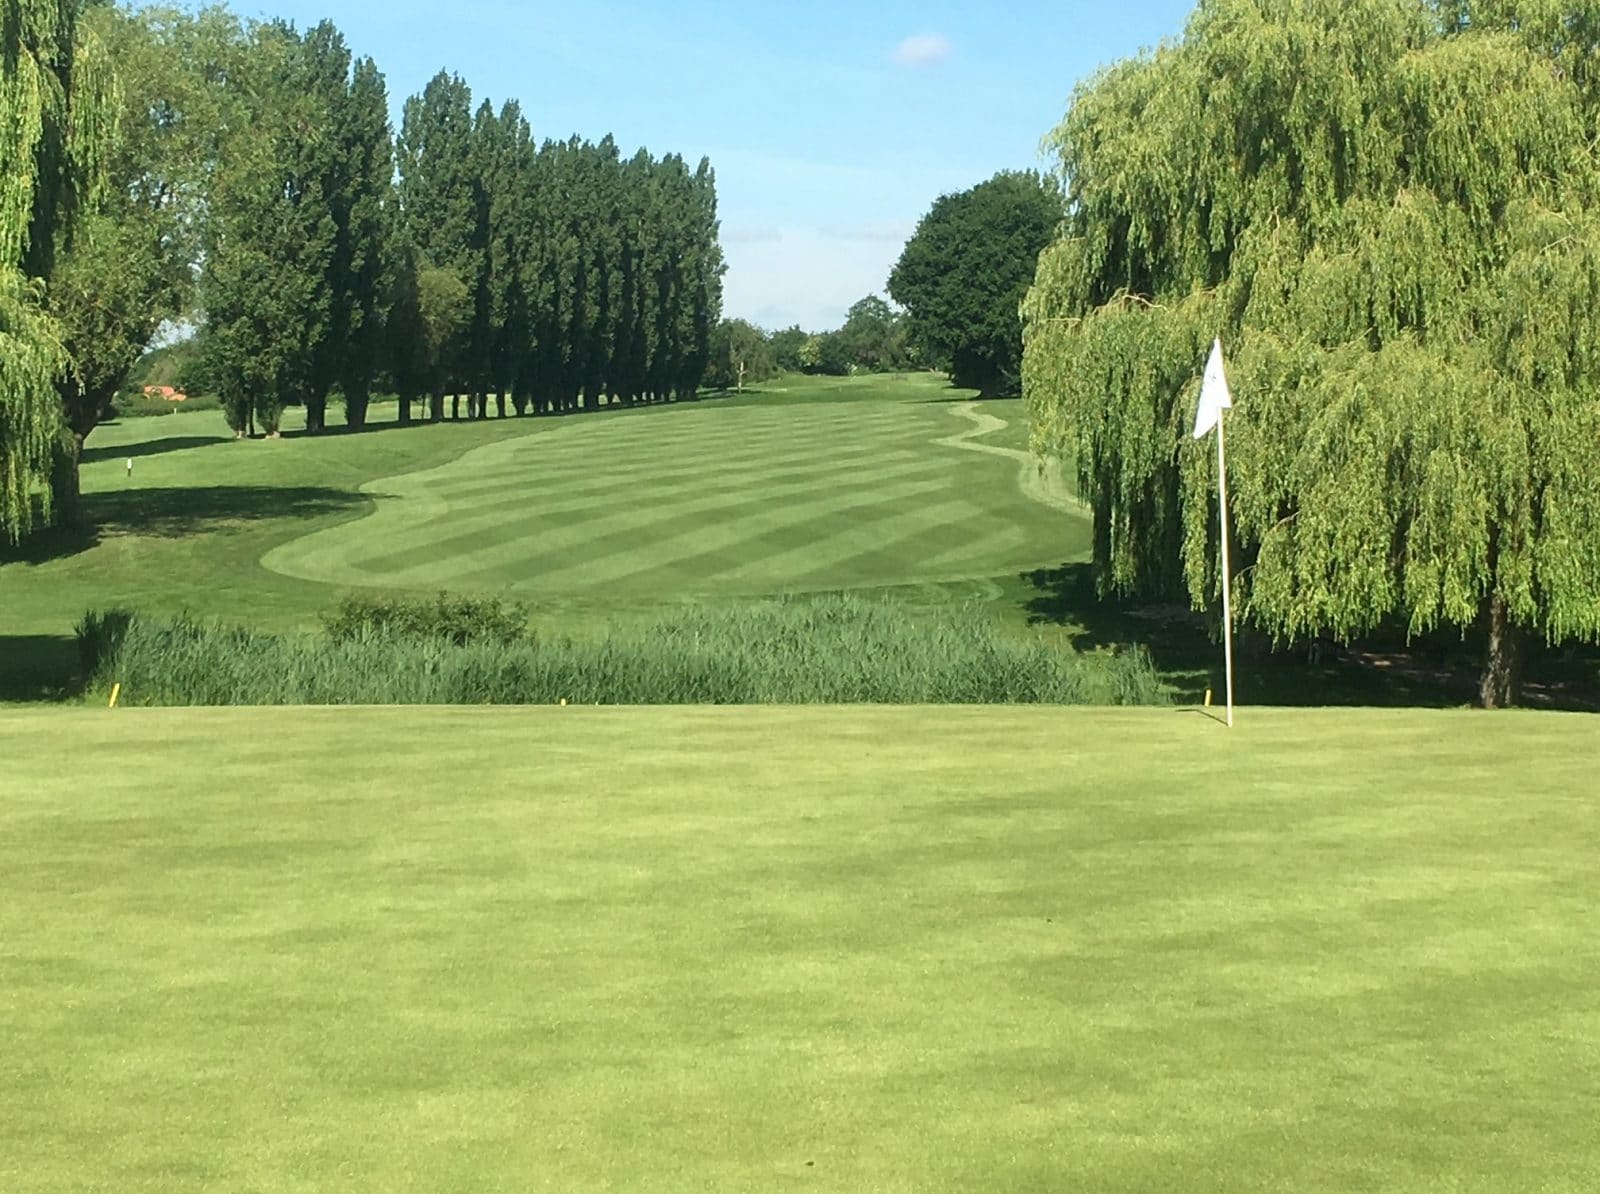 14th Green at Abridge Golf Club